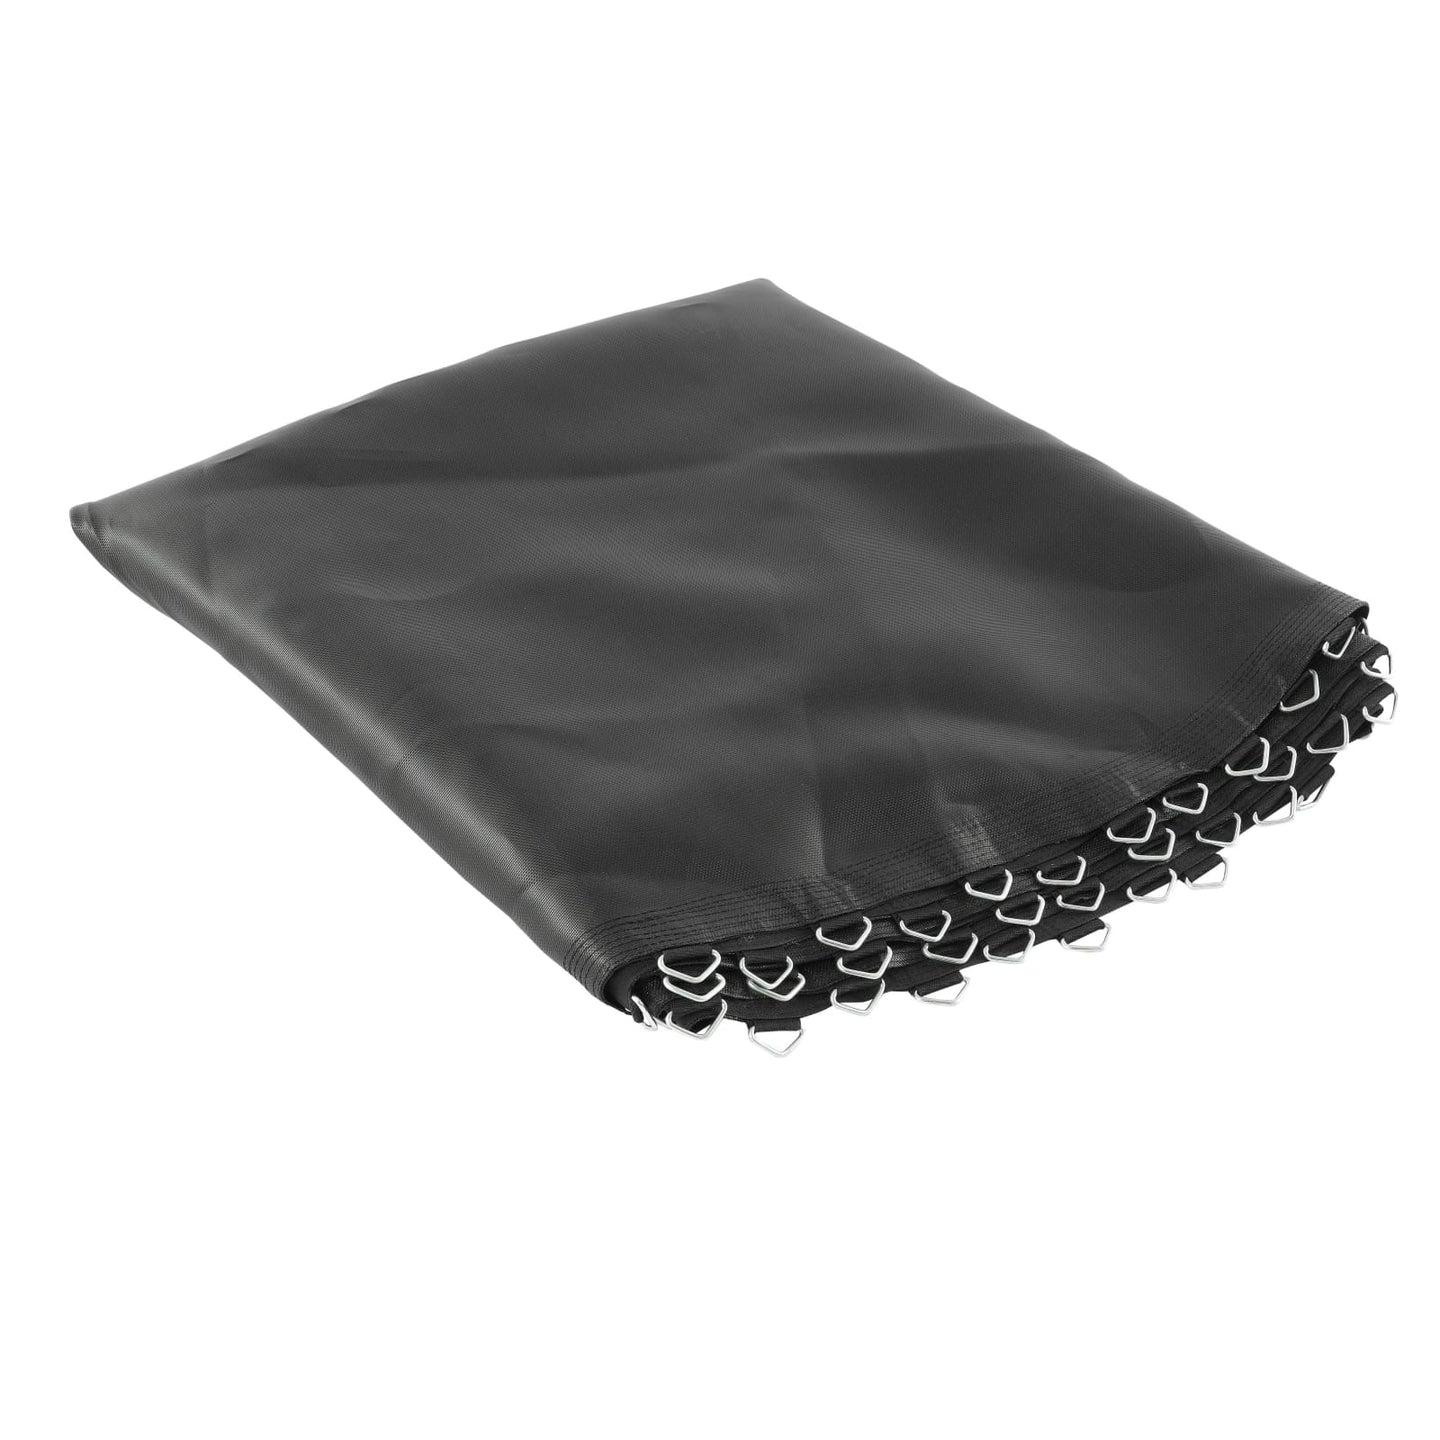 Upper Bounce Trampoline Replacement Jumping Mat Fits For 11 Ft. Round Frames W/ 72 V-Rings 5.5 Springs - Trampoline Replacements